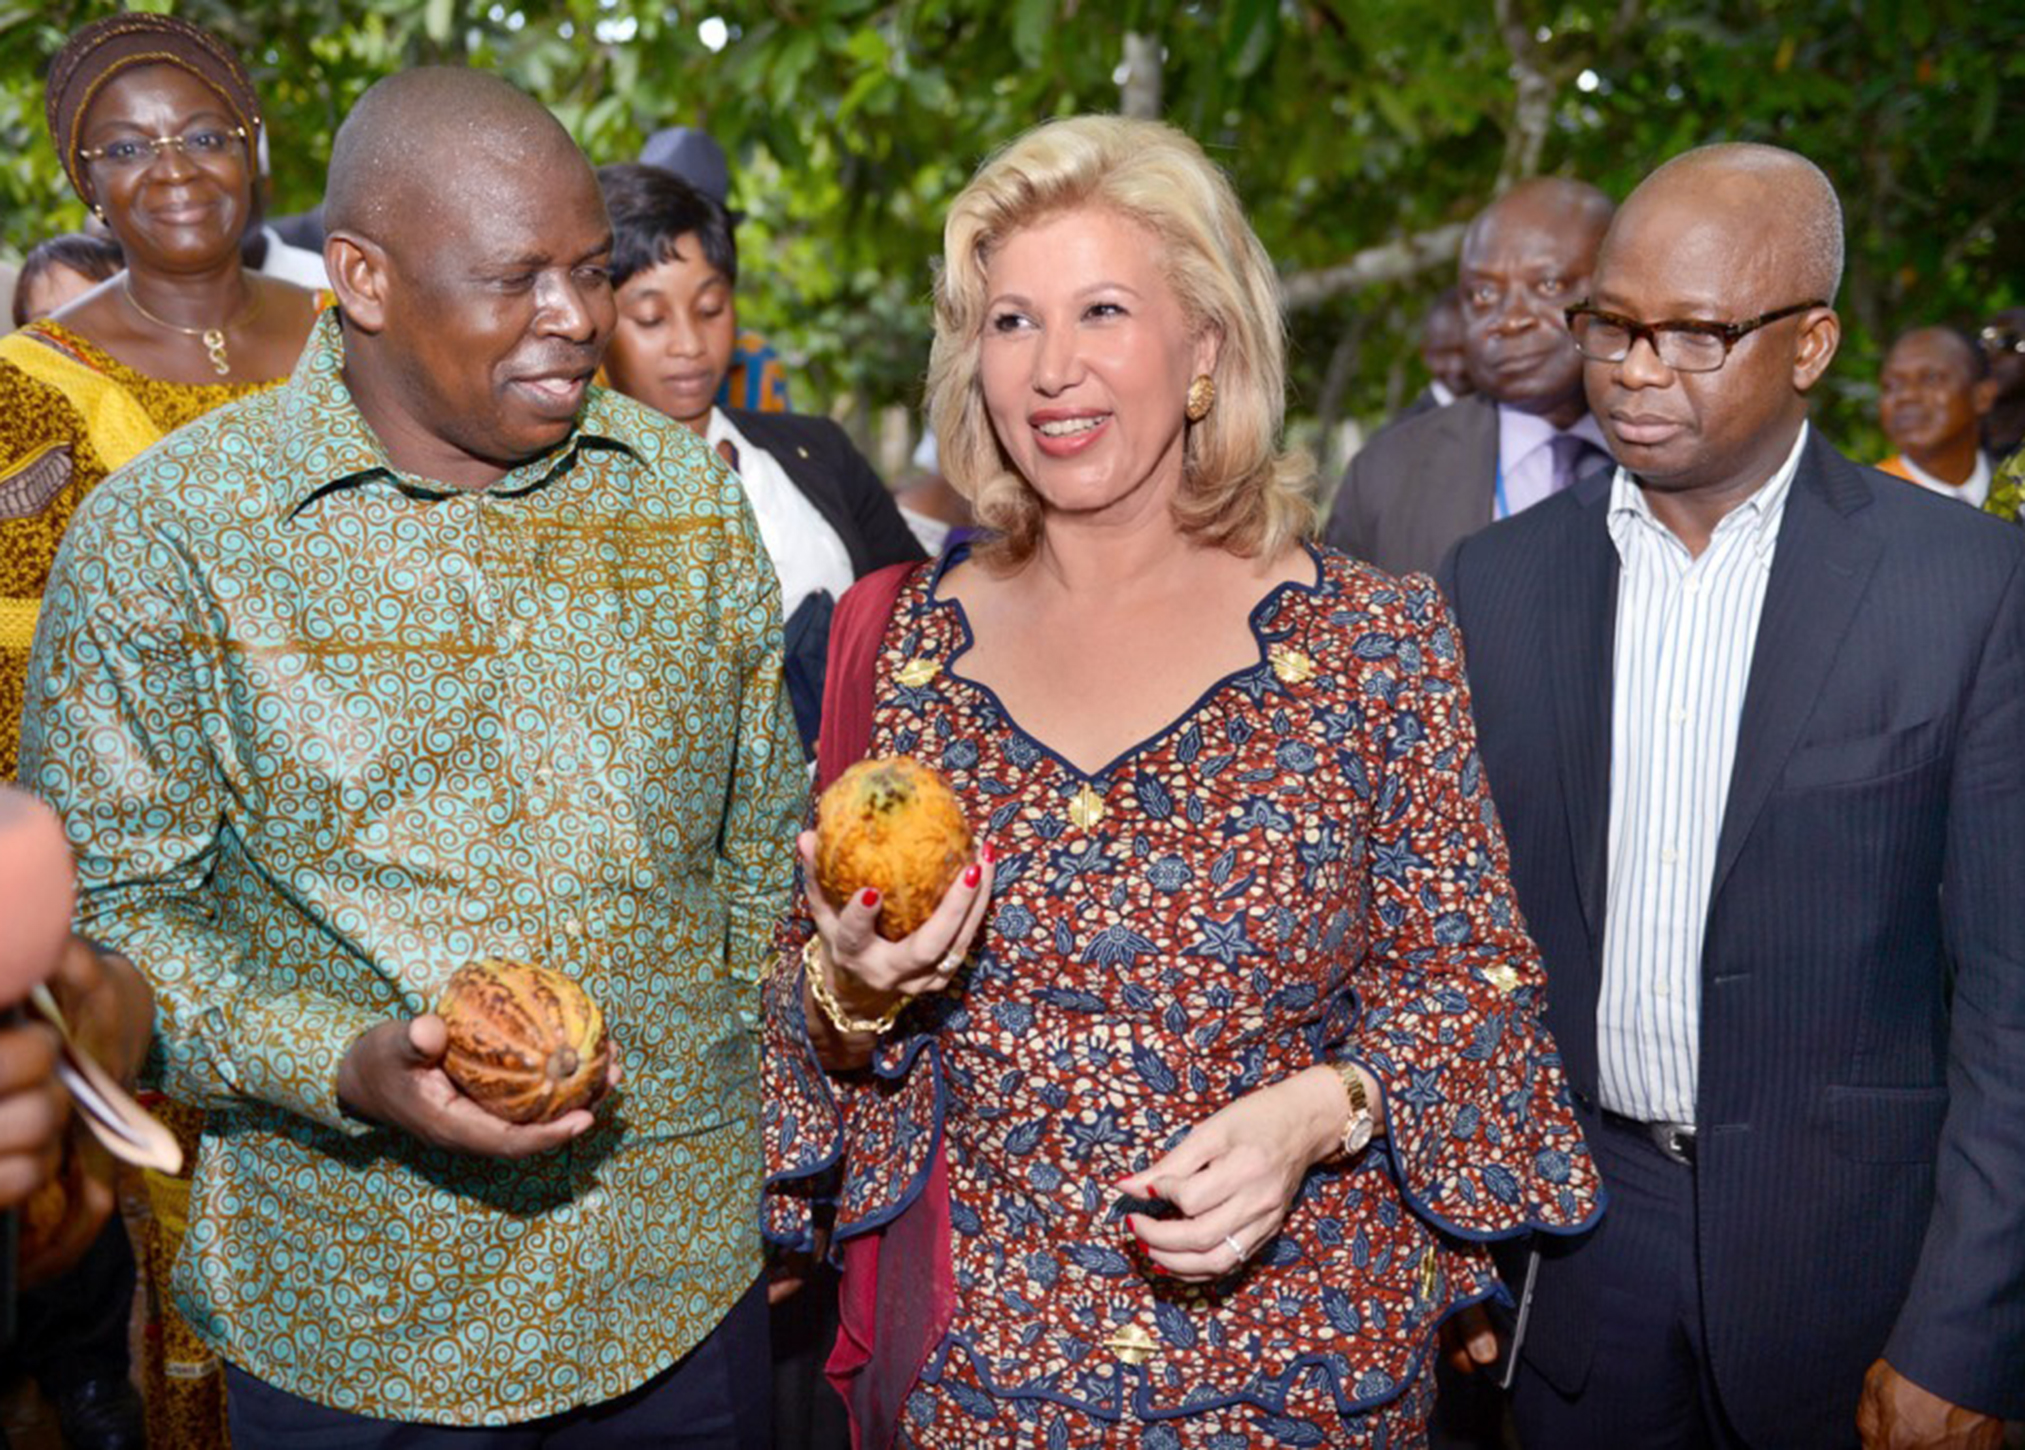 The First Lady of Ivory Coast, Madame Dominique Ouattara, is coordinating her country's efforts to address child labor in cocoa farming.